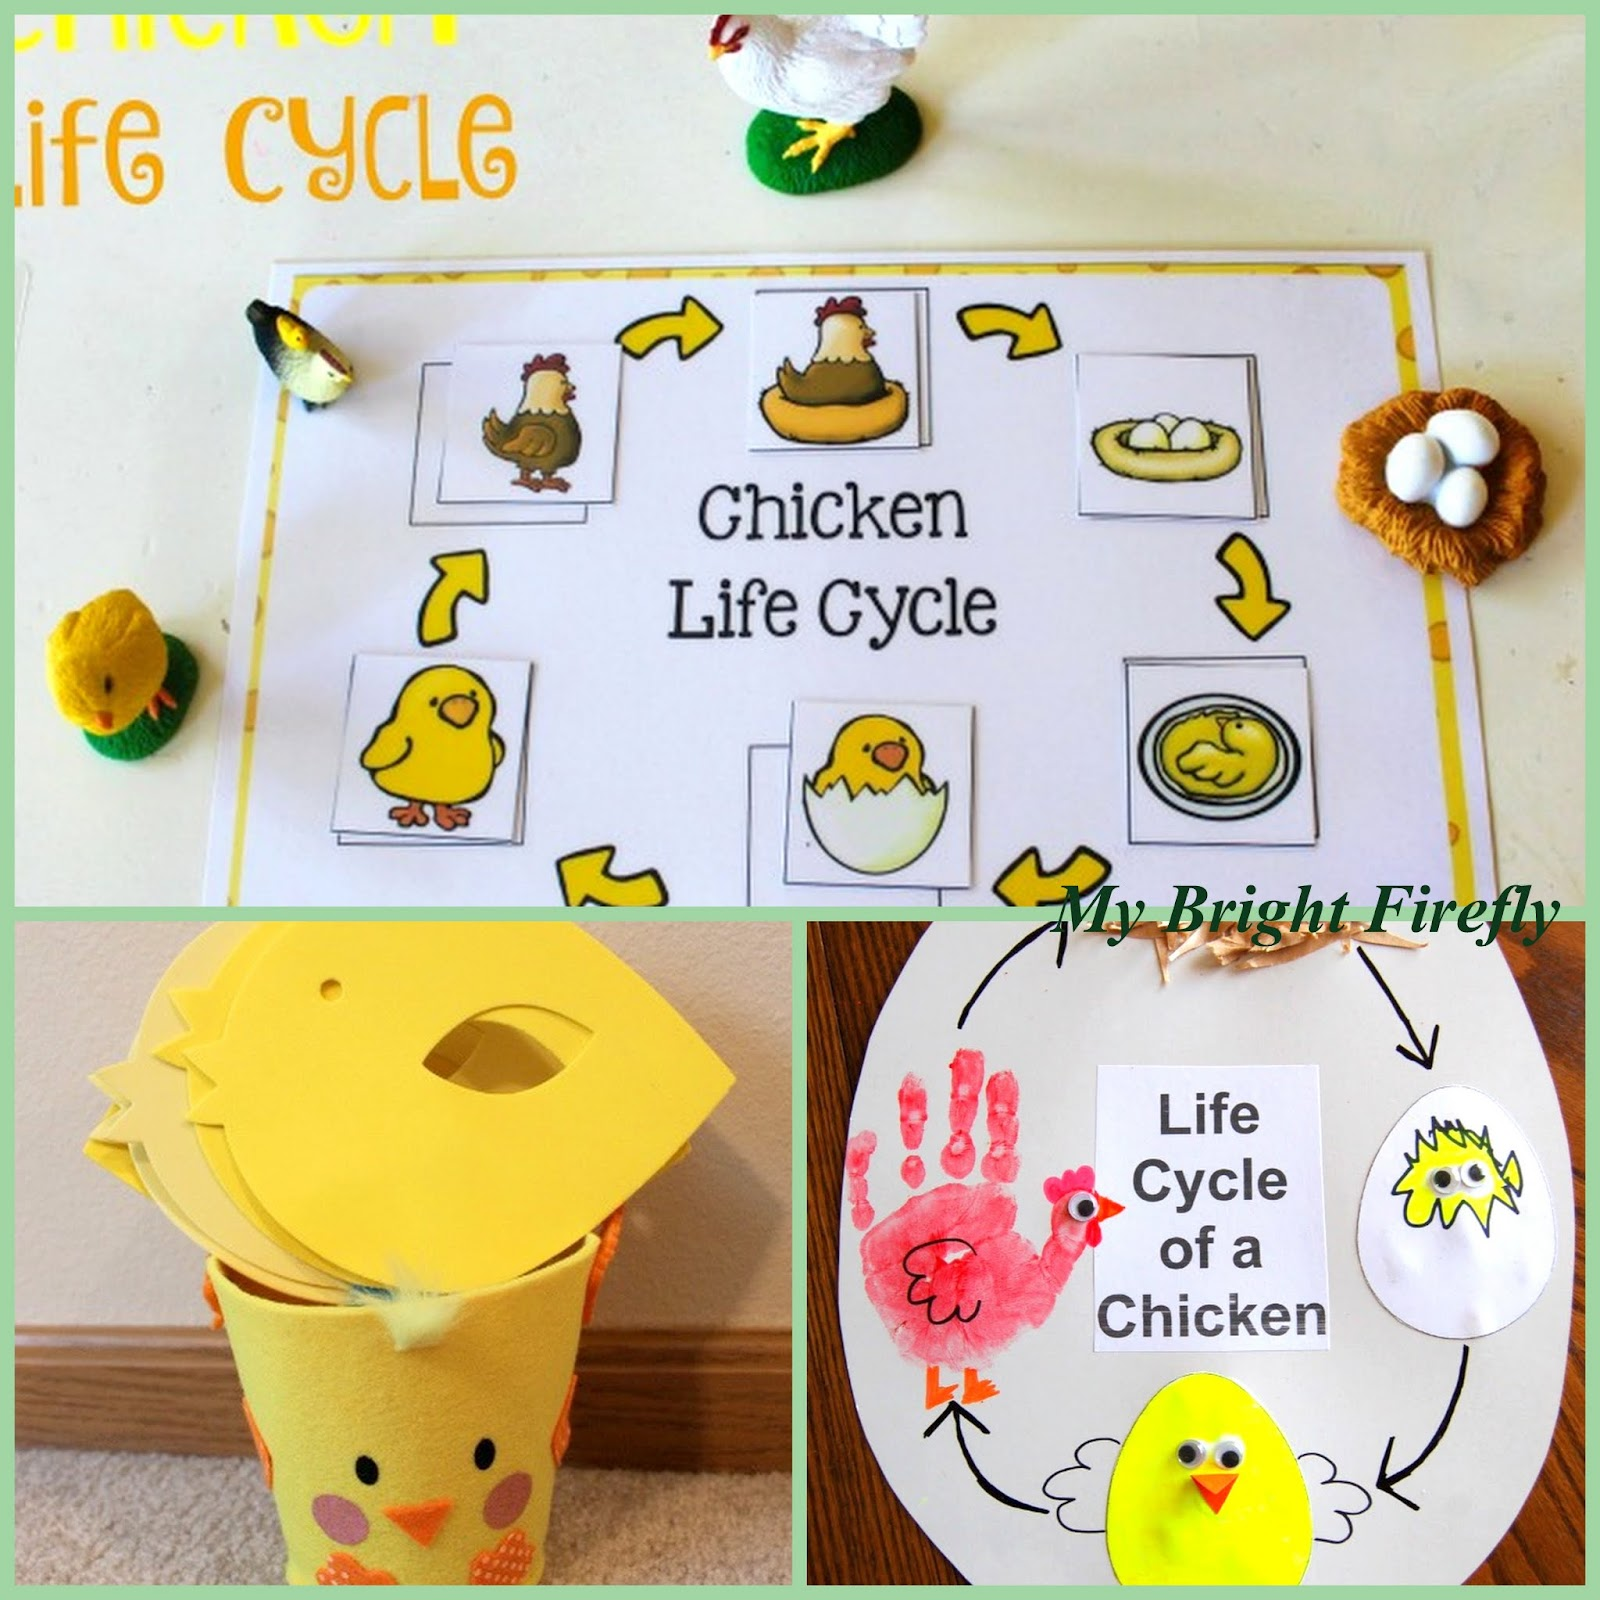 My Bright Firefly Happy Chicks On Grass Preschool Art Collaborative Project Decorating With